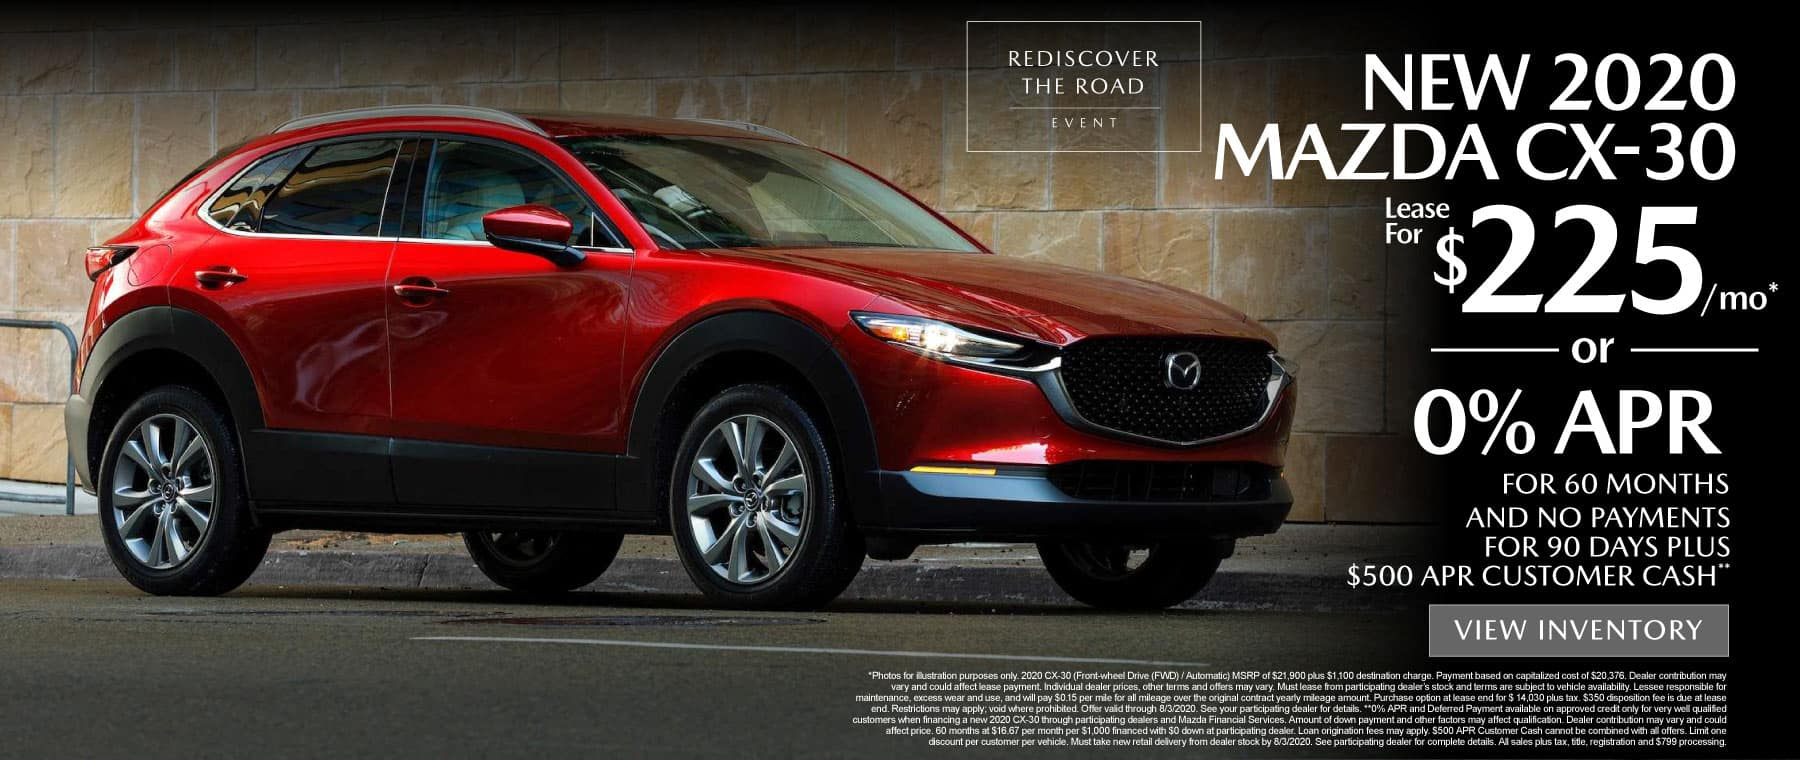 New 2020 MAZDA CX-30 lease for $225 a month or 0% APR for 60 months and no payments for 90 days plus $500 APR customer cash.